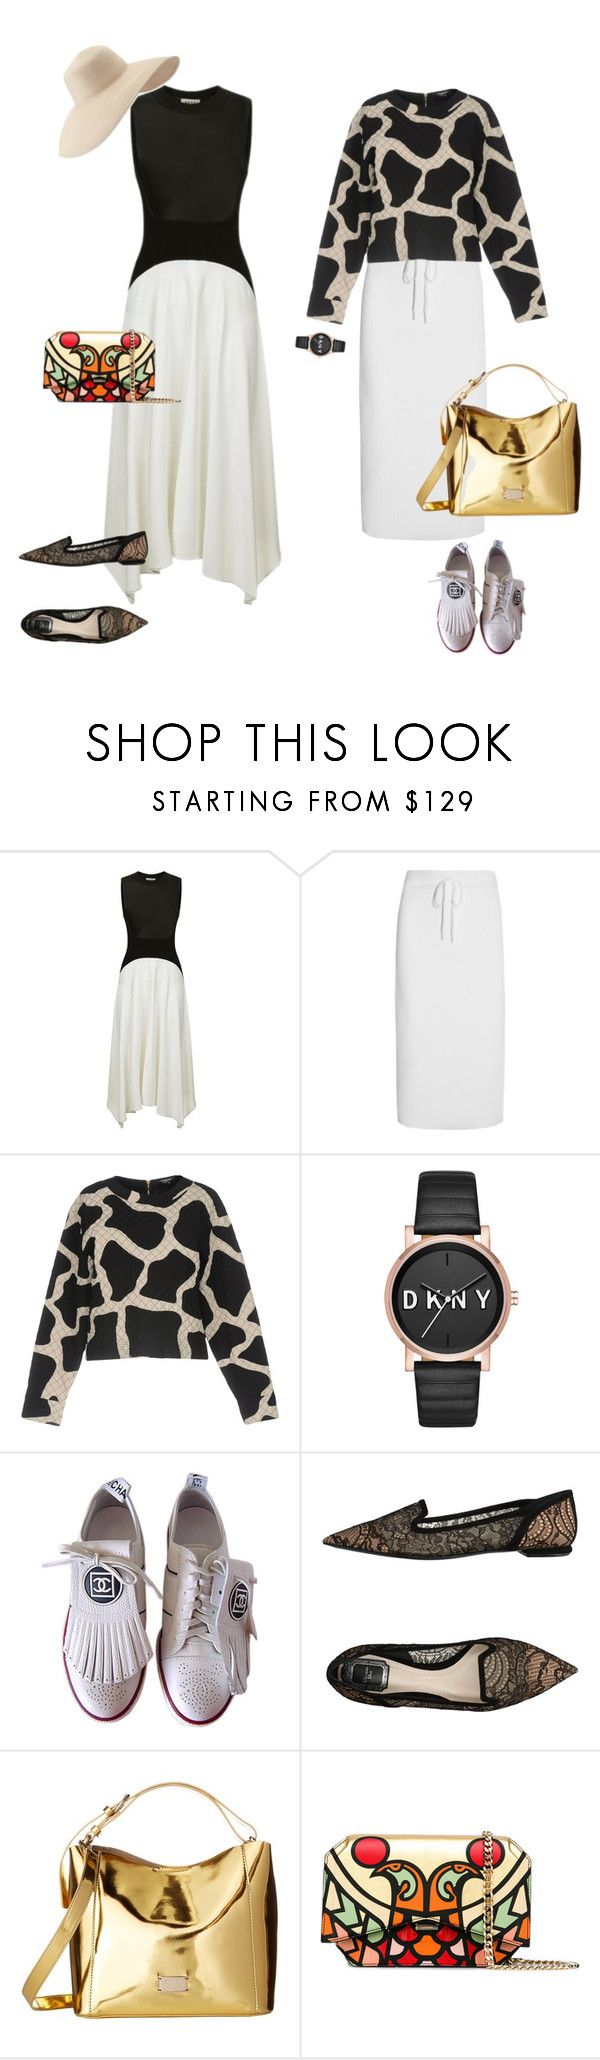 """""""На прогулку"""" by repriza on Polyvore featuring мода, DKNY, Chanel, Christian Dior, Frances Valentine, Givenchy и Eric Javits"""